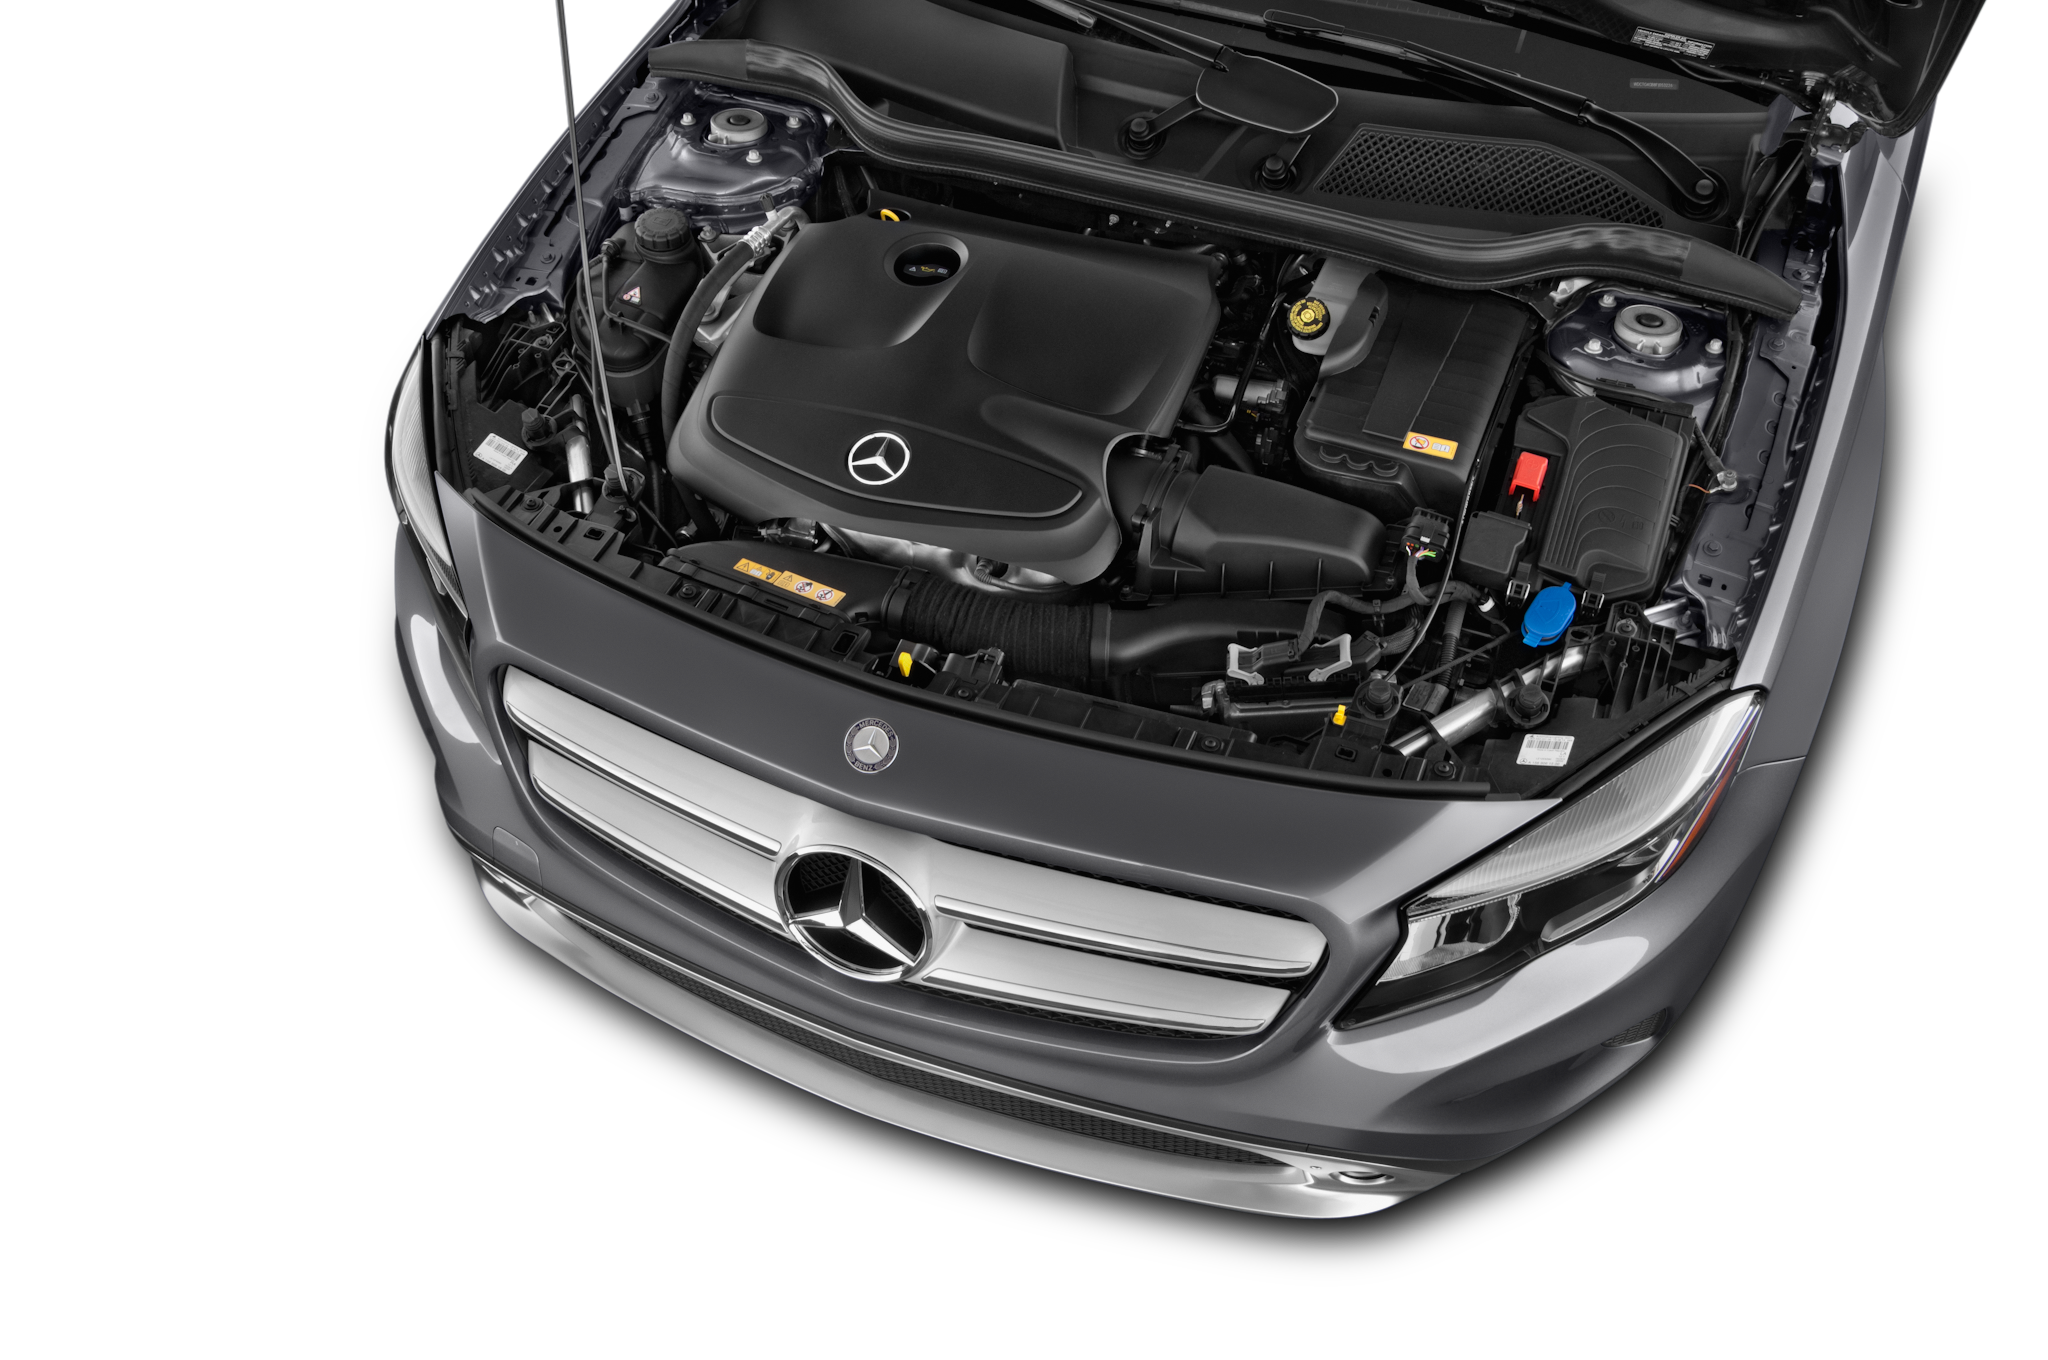 2015 Mercedes GLA Engine